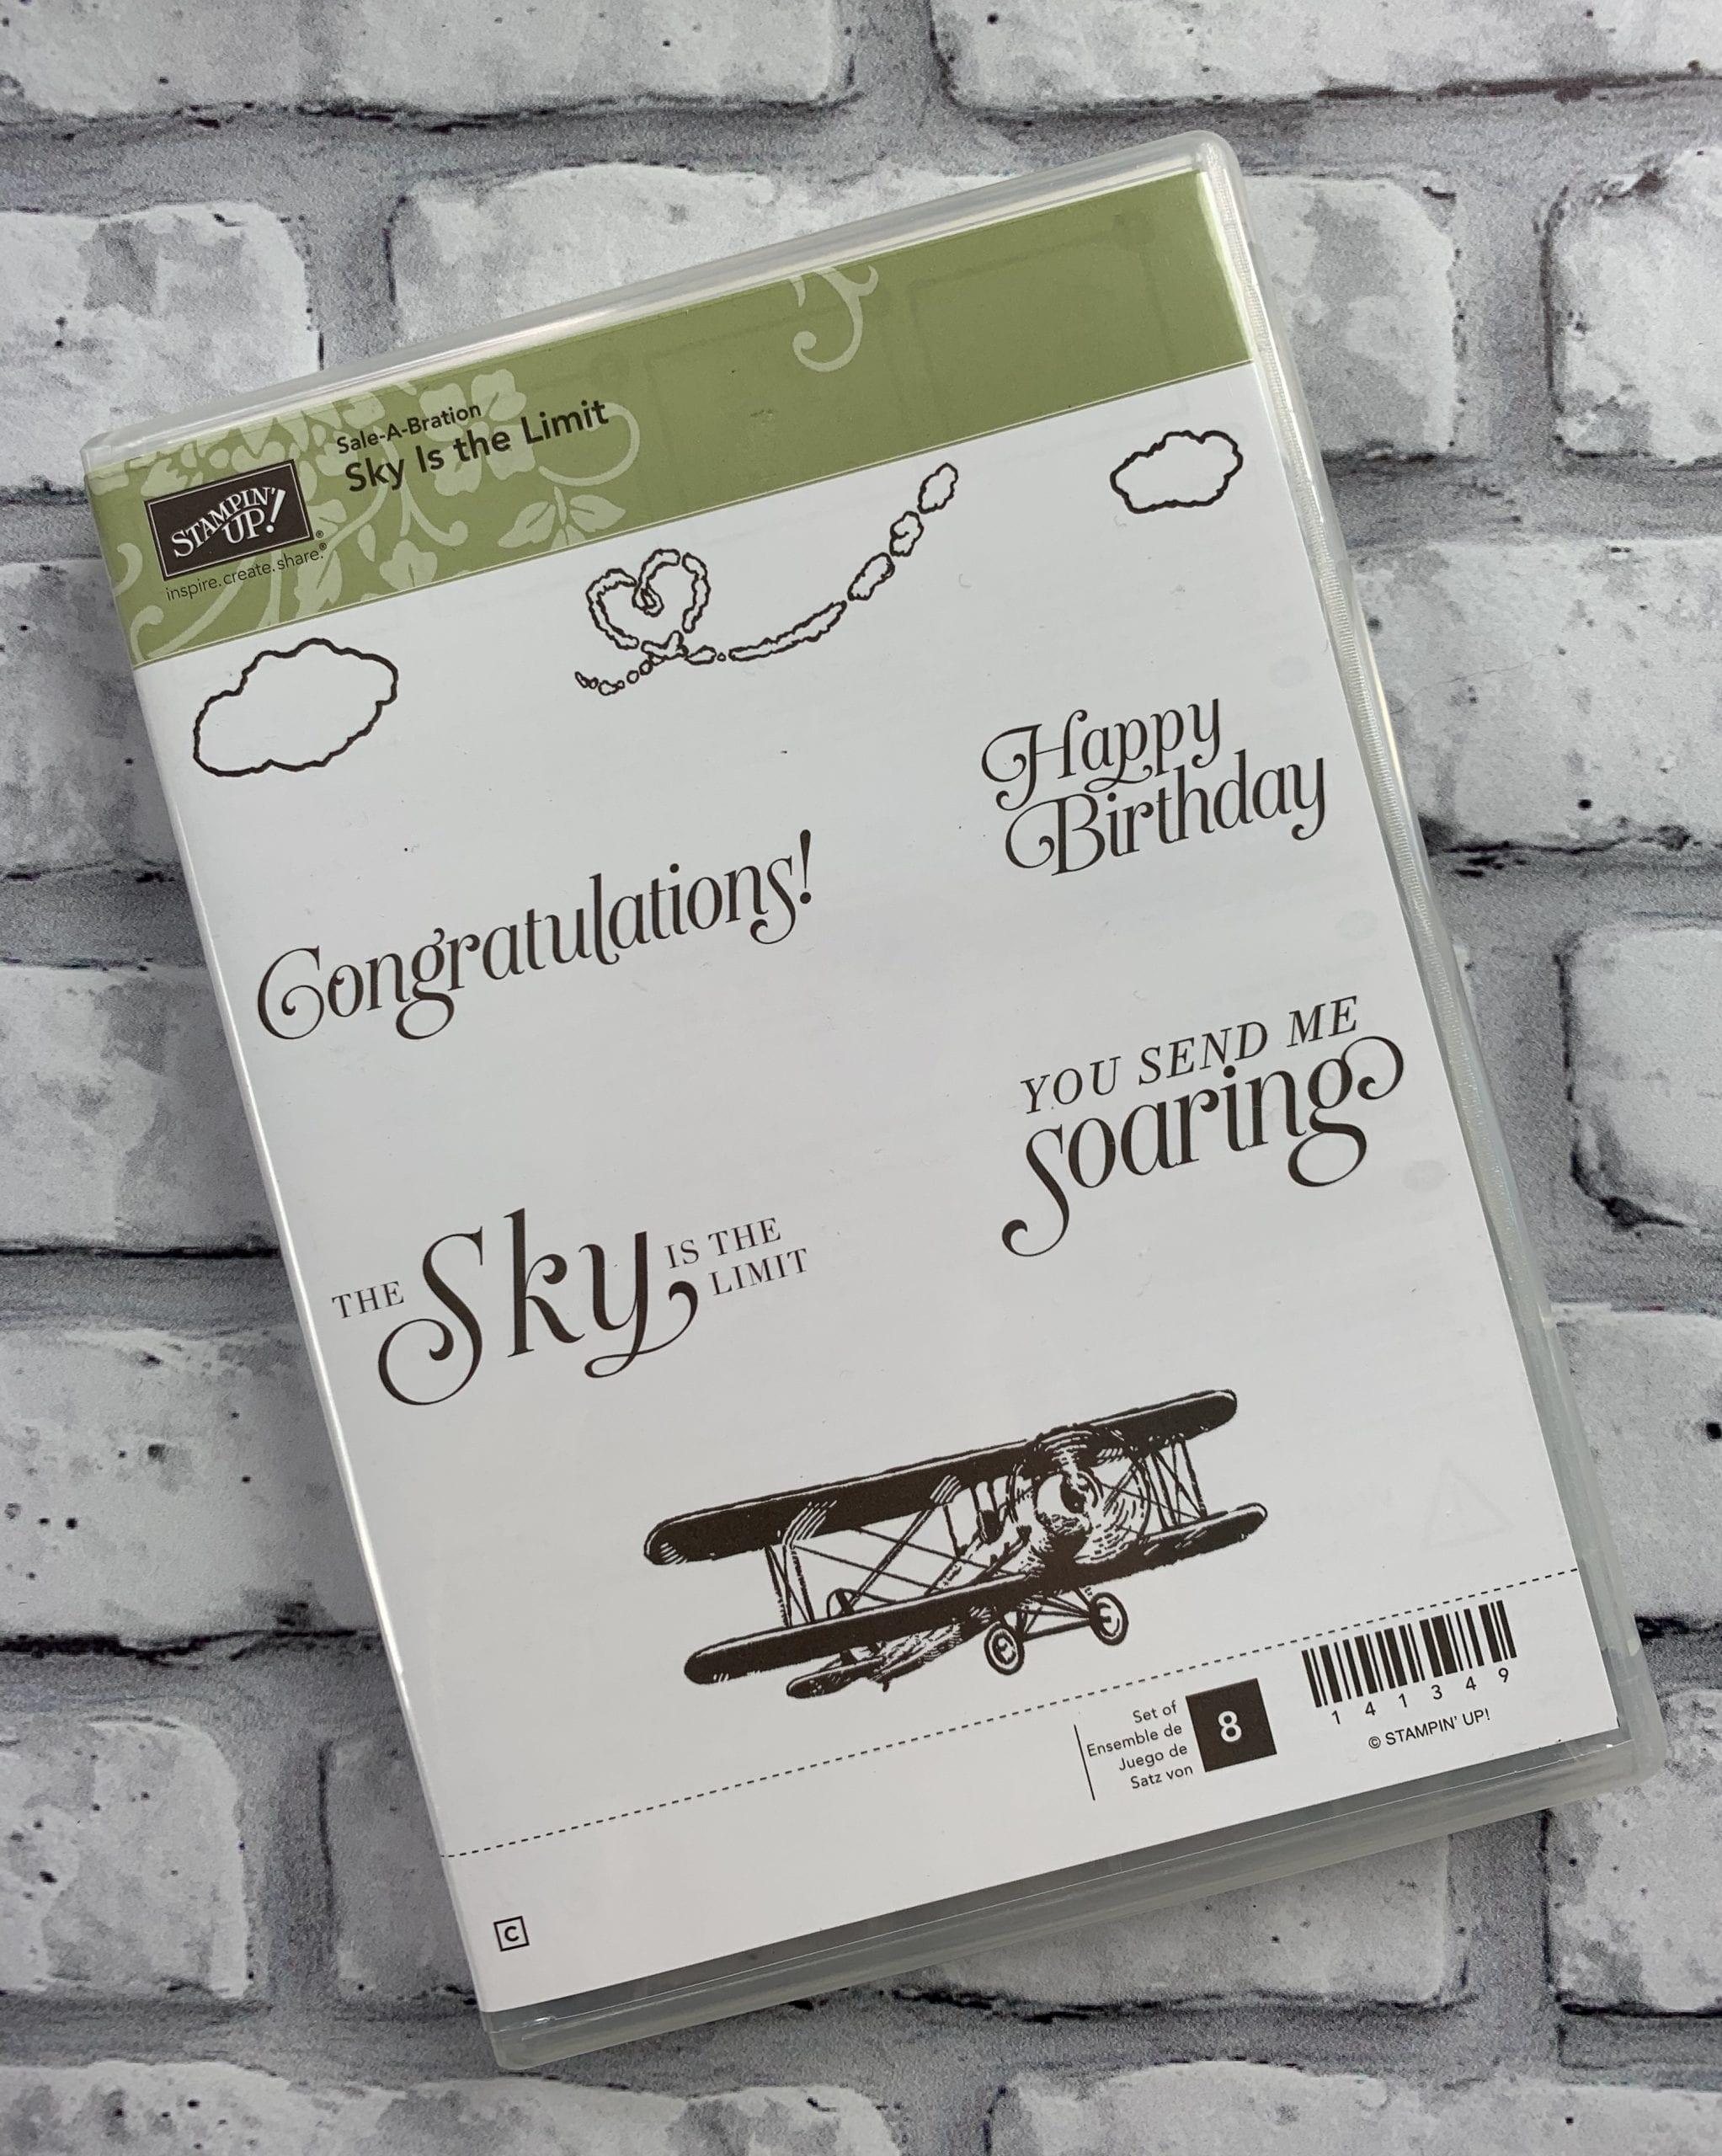 Day 4 – Robyn's July Extravaganza Promotion Week 1 – Stampin' Up! Sky is the Limit Giveaway